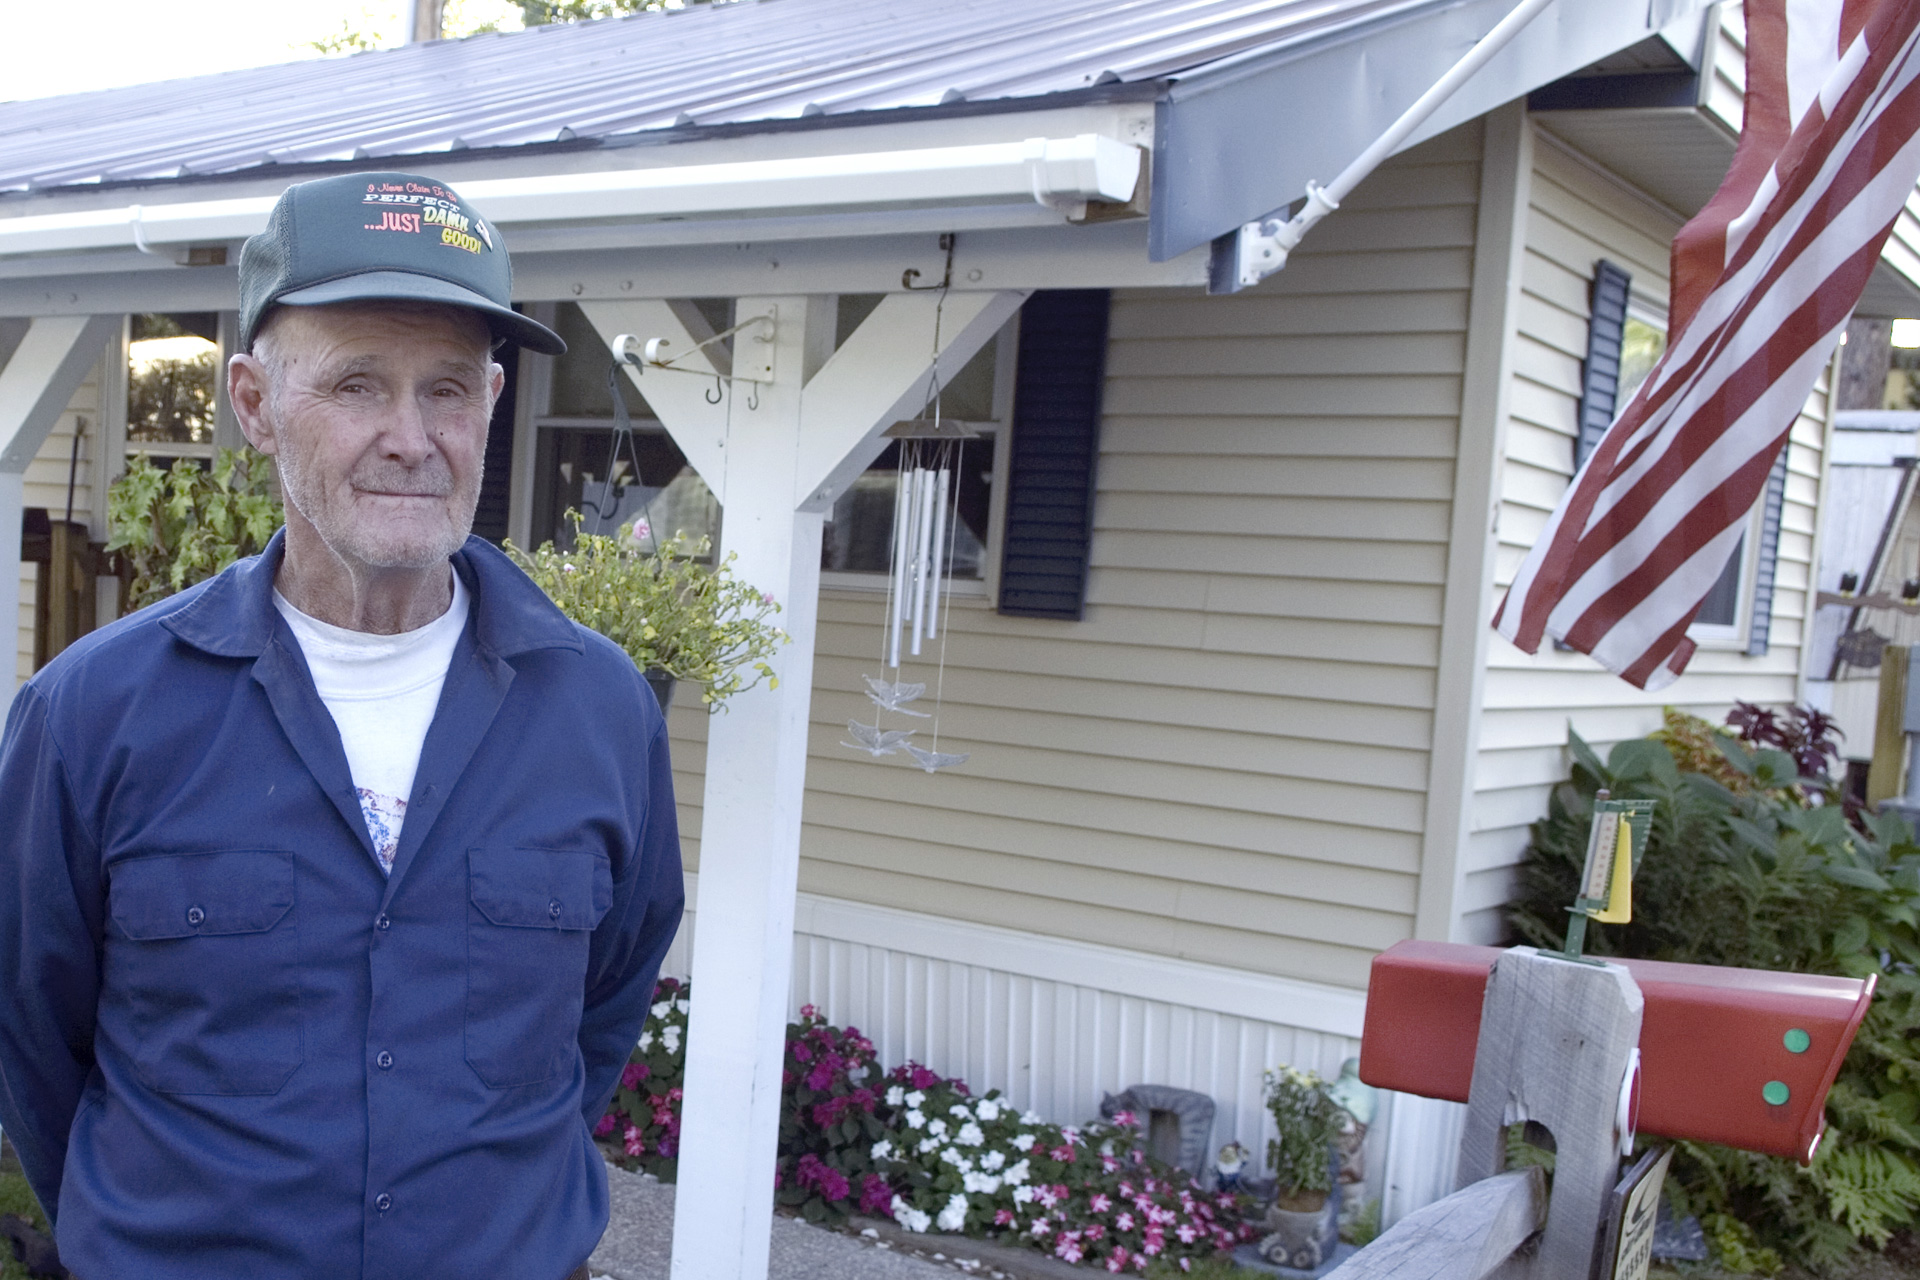 Man stands with manufactured home in background